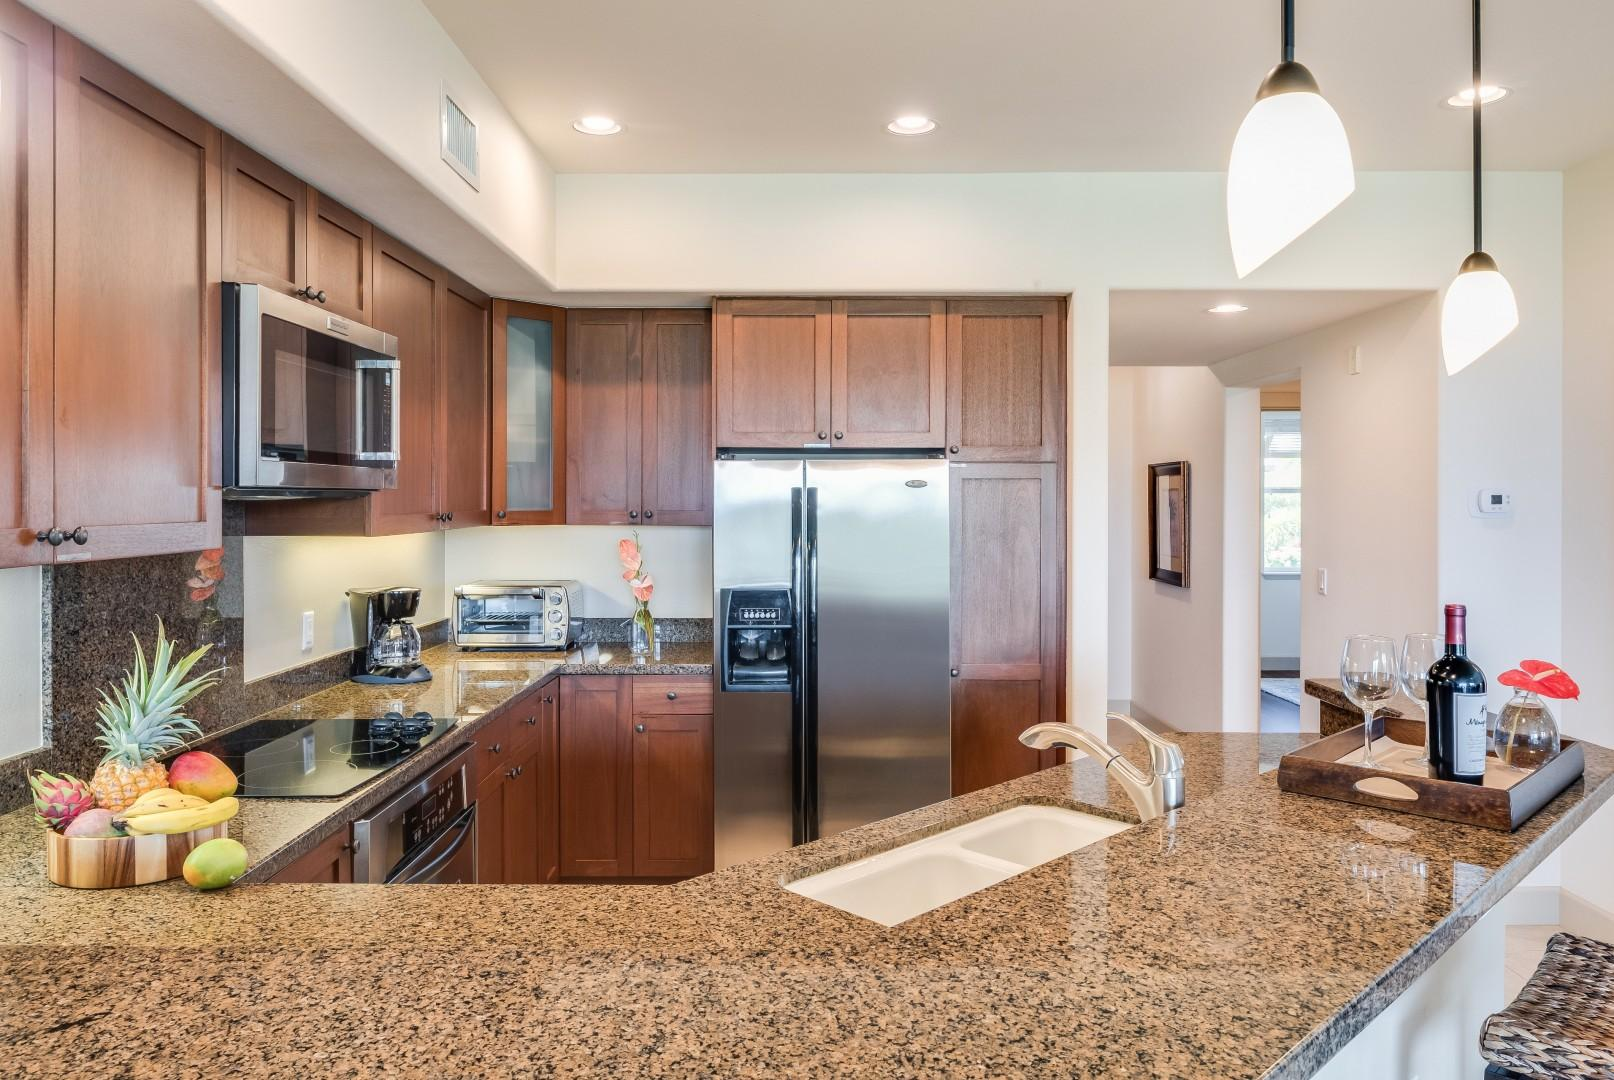 Spacious fully-equipped kitchen w/ granite countertops